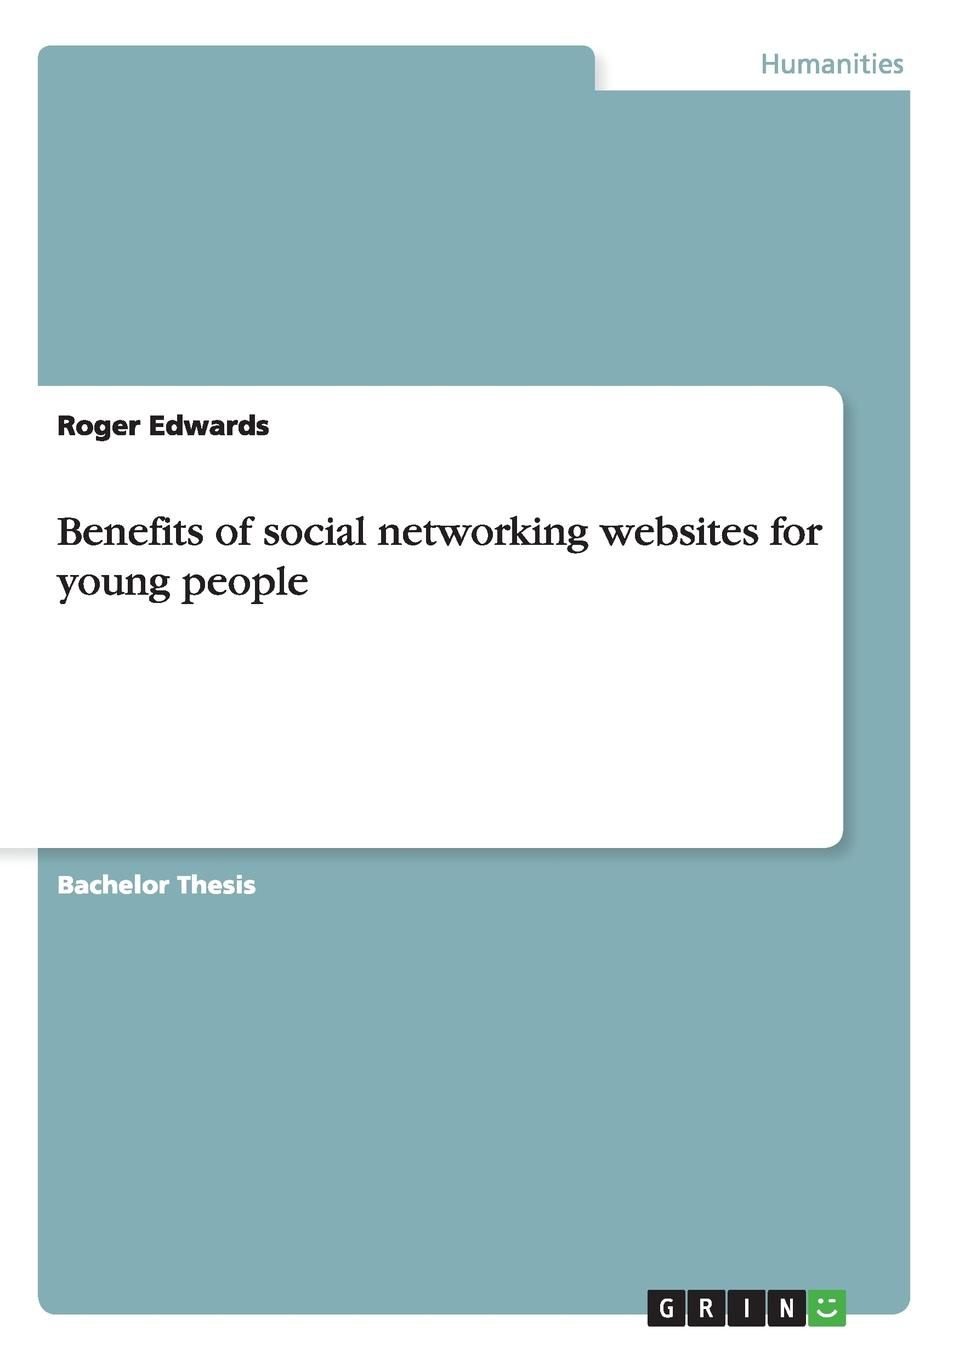 Roger Edwards Benefits of social networking websites for young people social networking